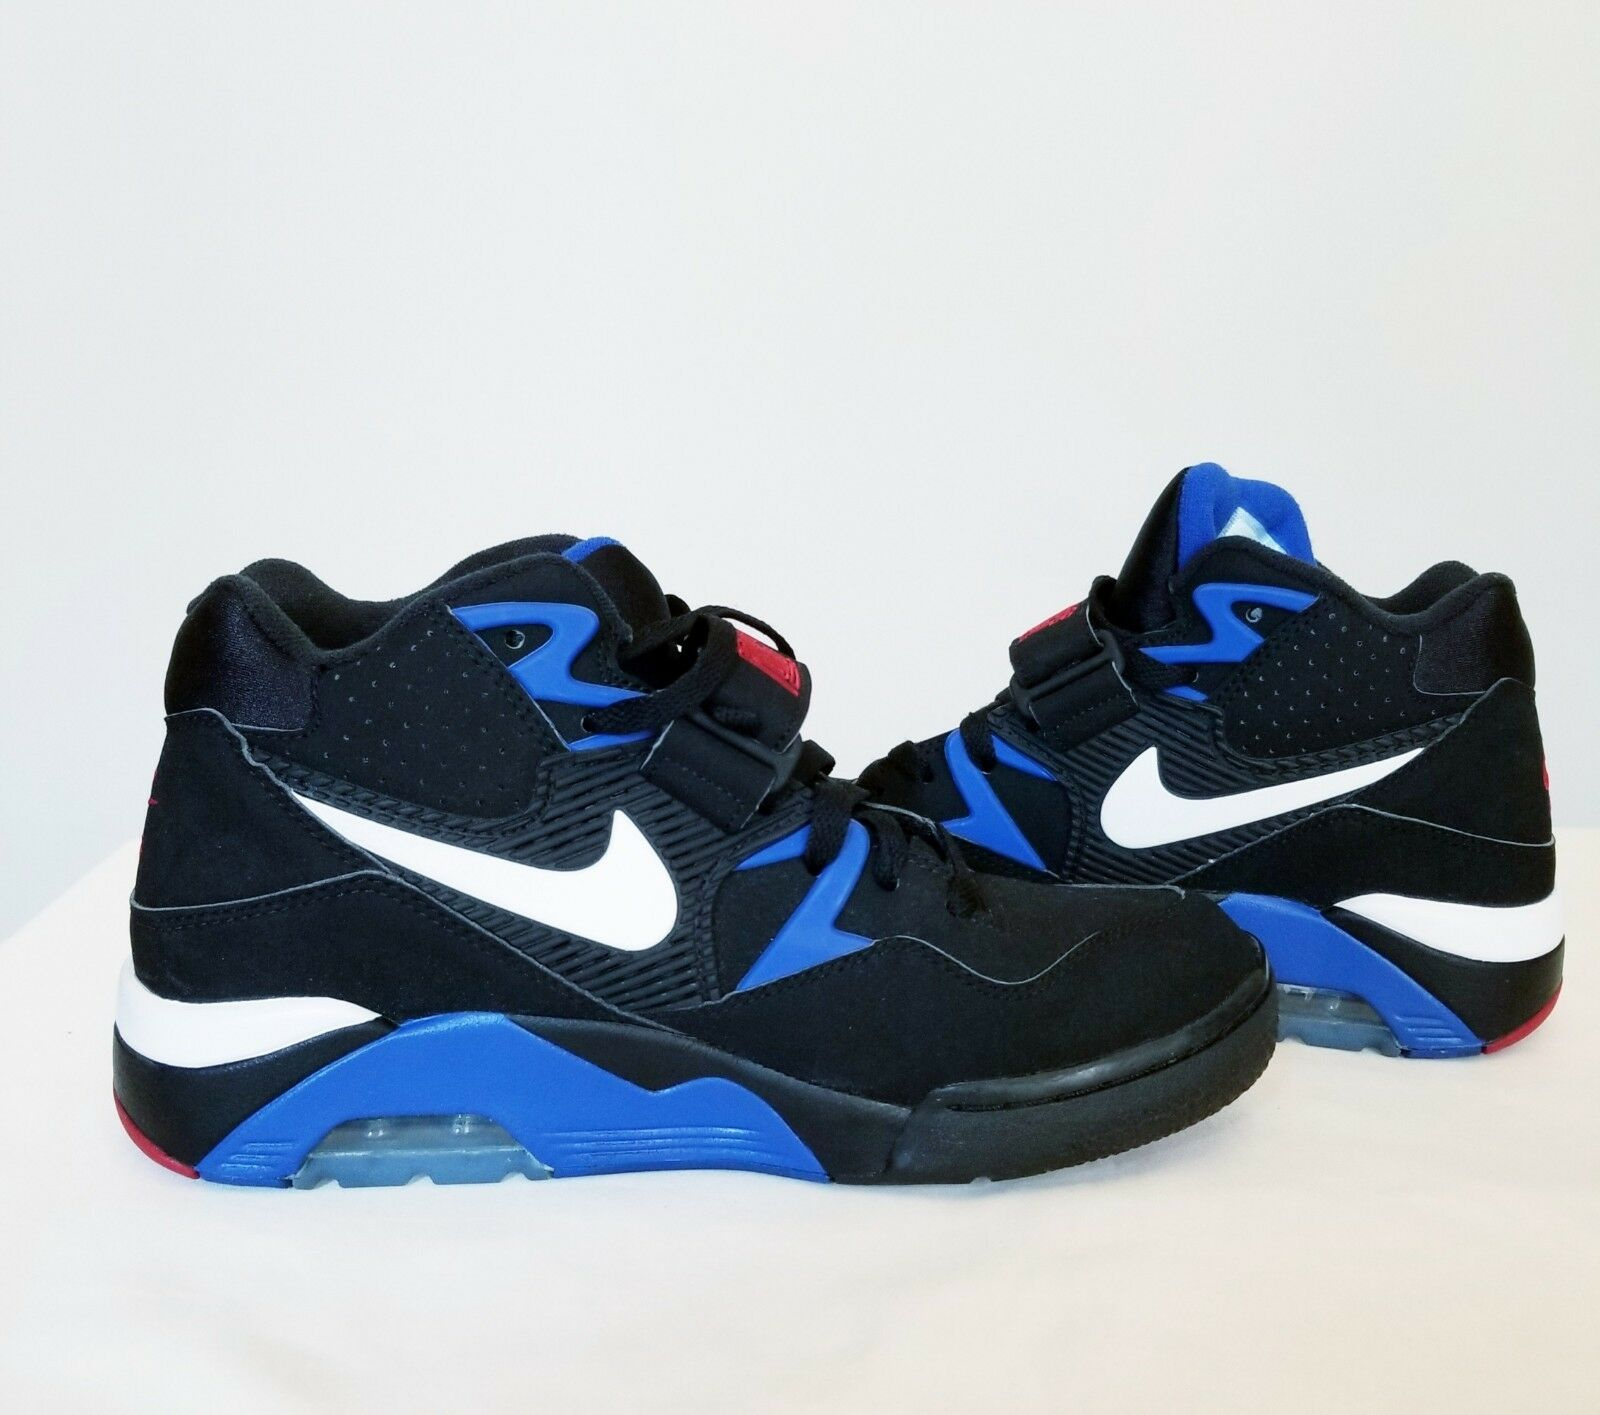 Nike Air Force shoe size 7.5 (310095-011) Brand Brand Brand new without box - Free ship 81737a